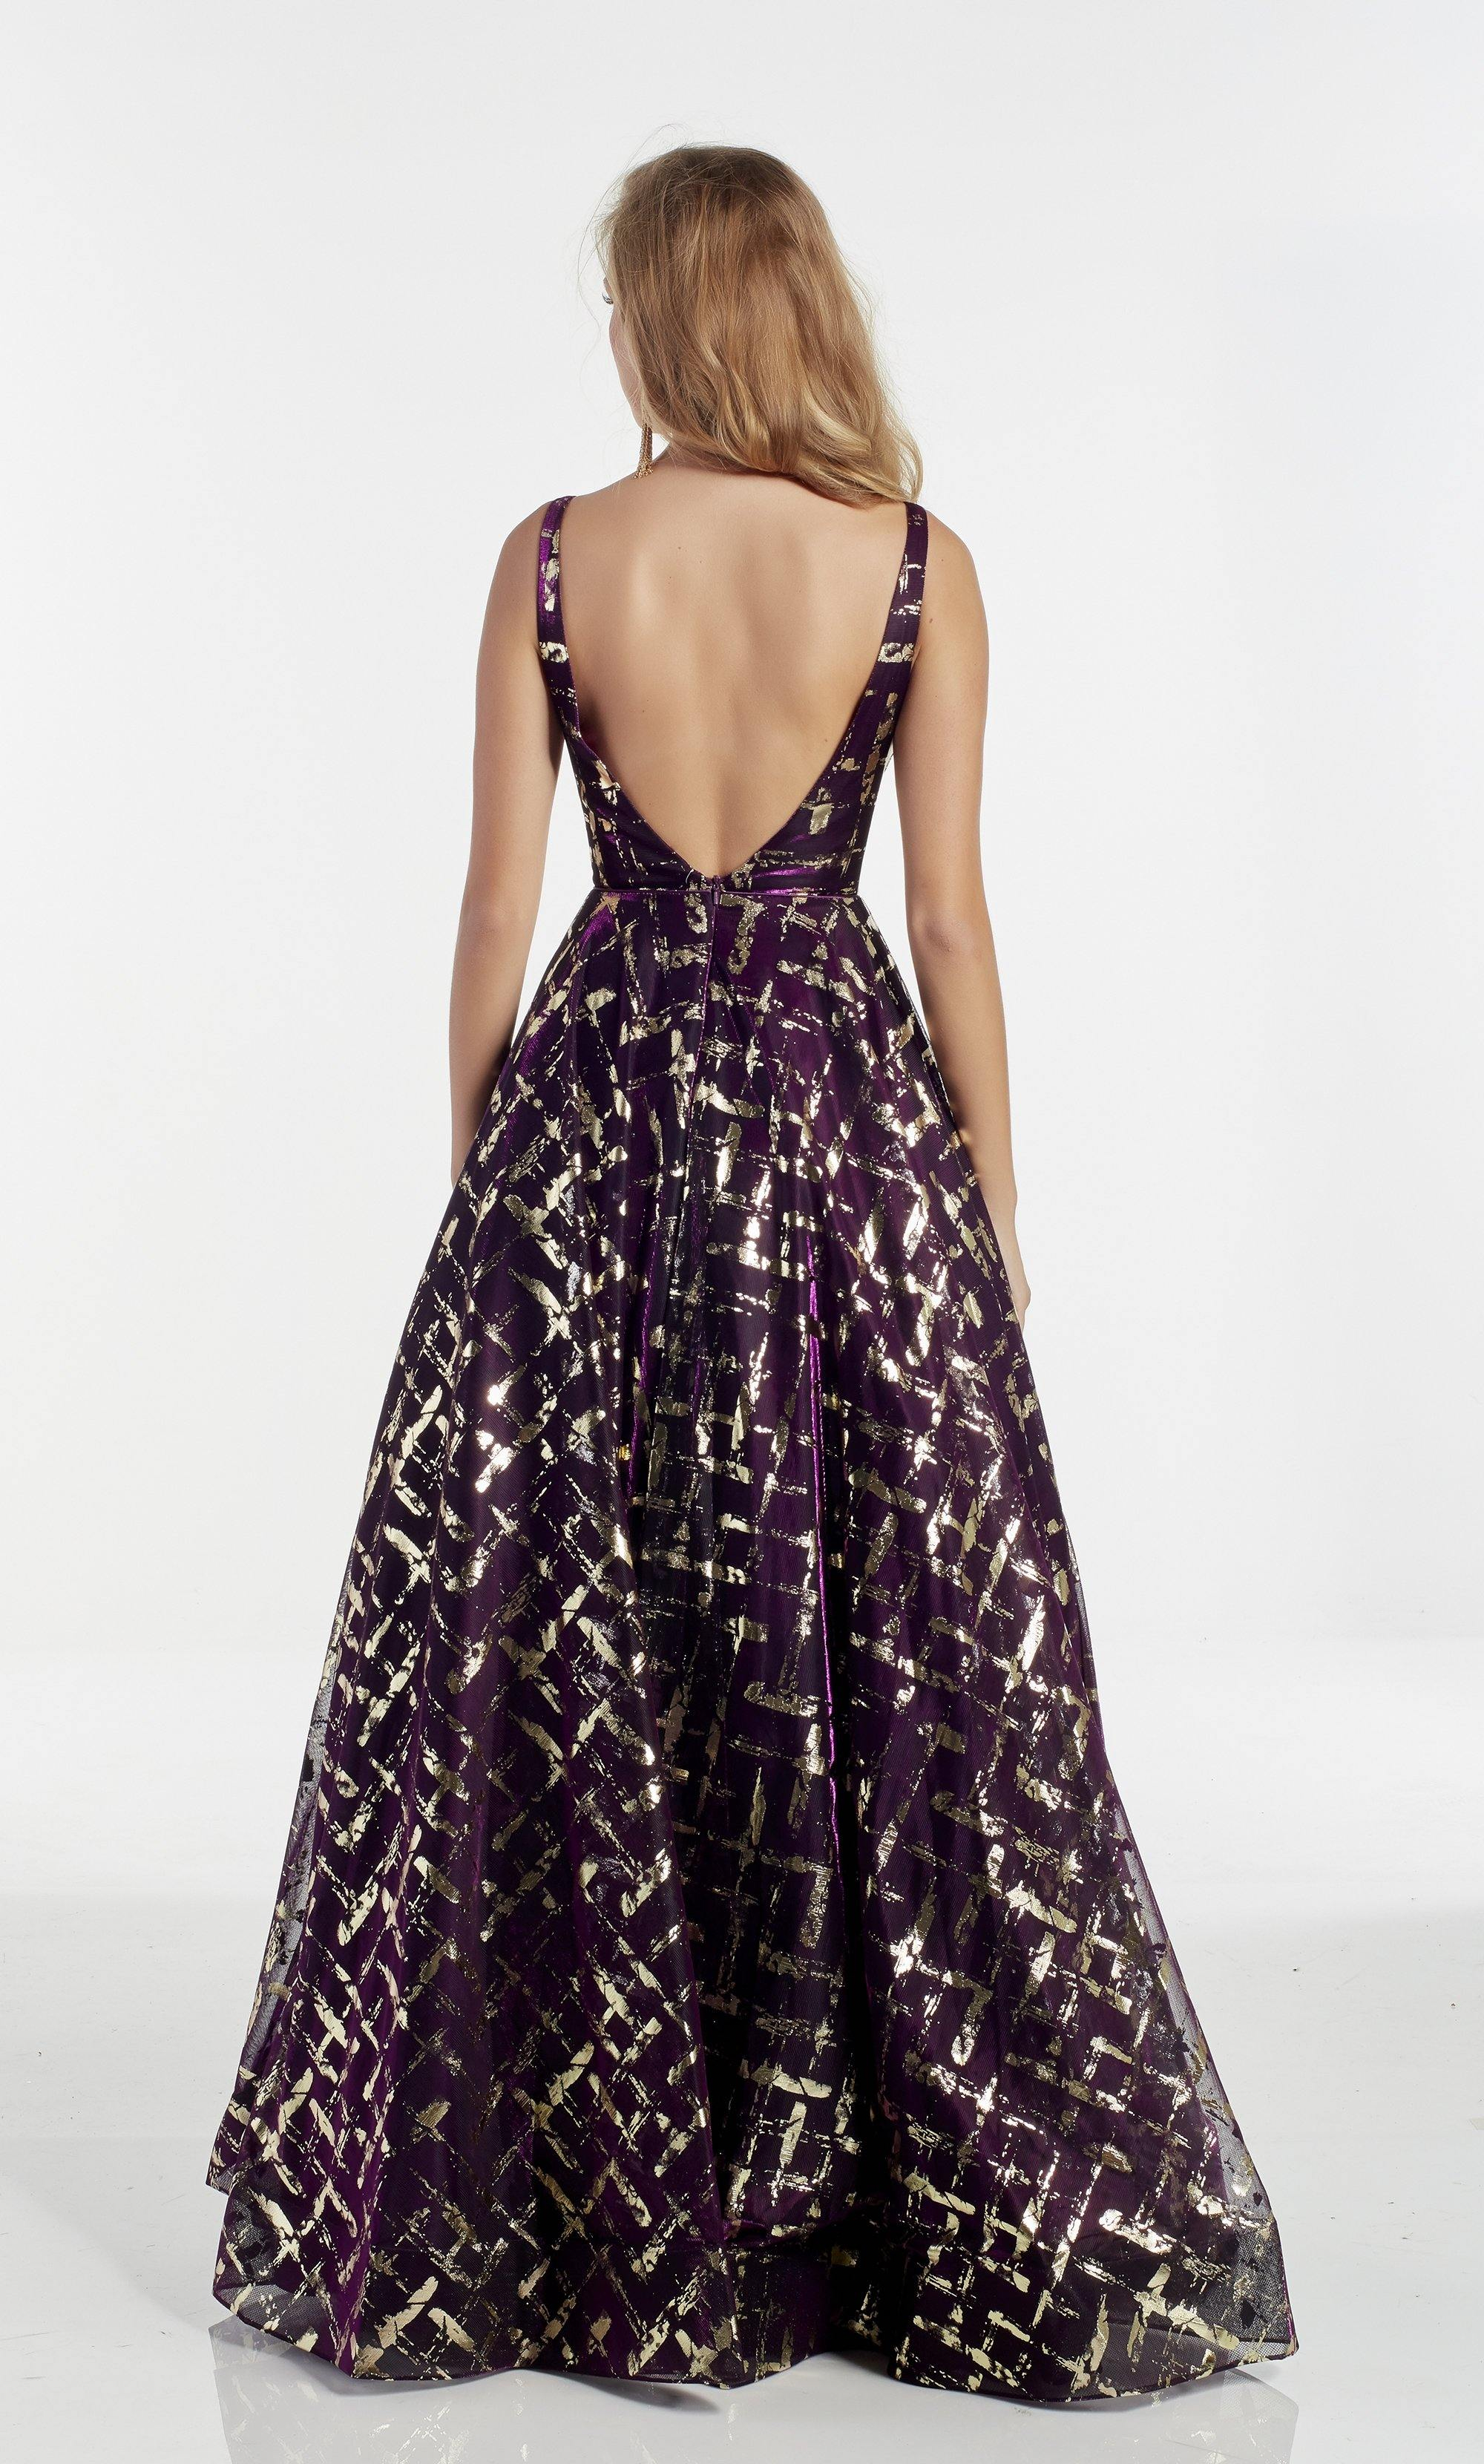 Dark purple ballgown with a beaded waist and Gold foil detail